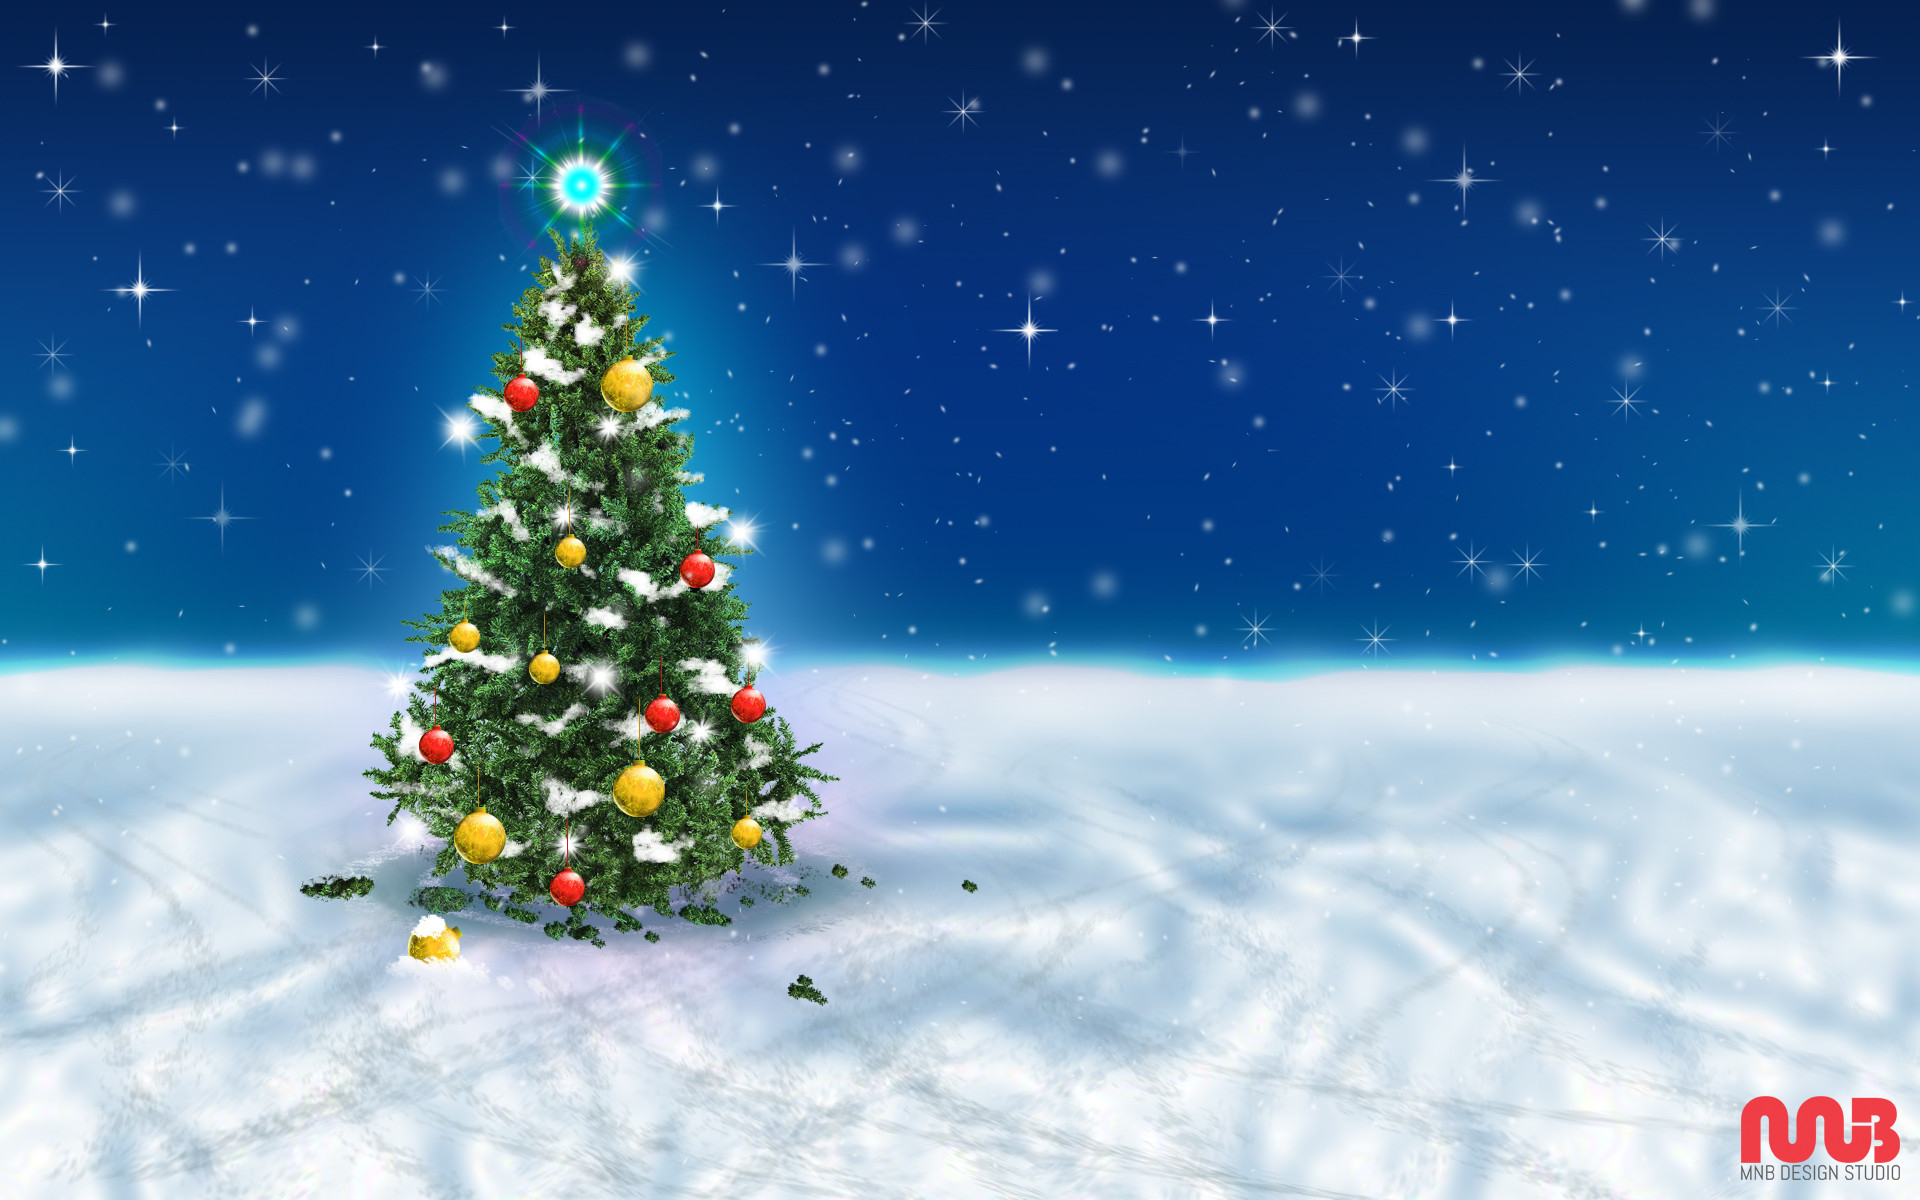 10 Most Popular Animated Christmas Tree Wallpapers Full Hd 1920 1080